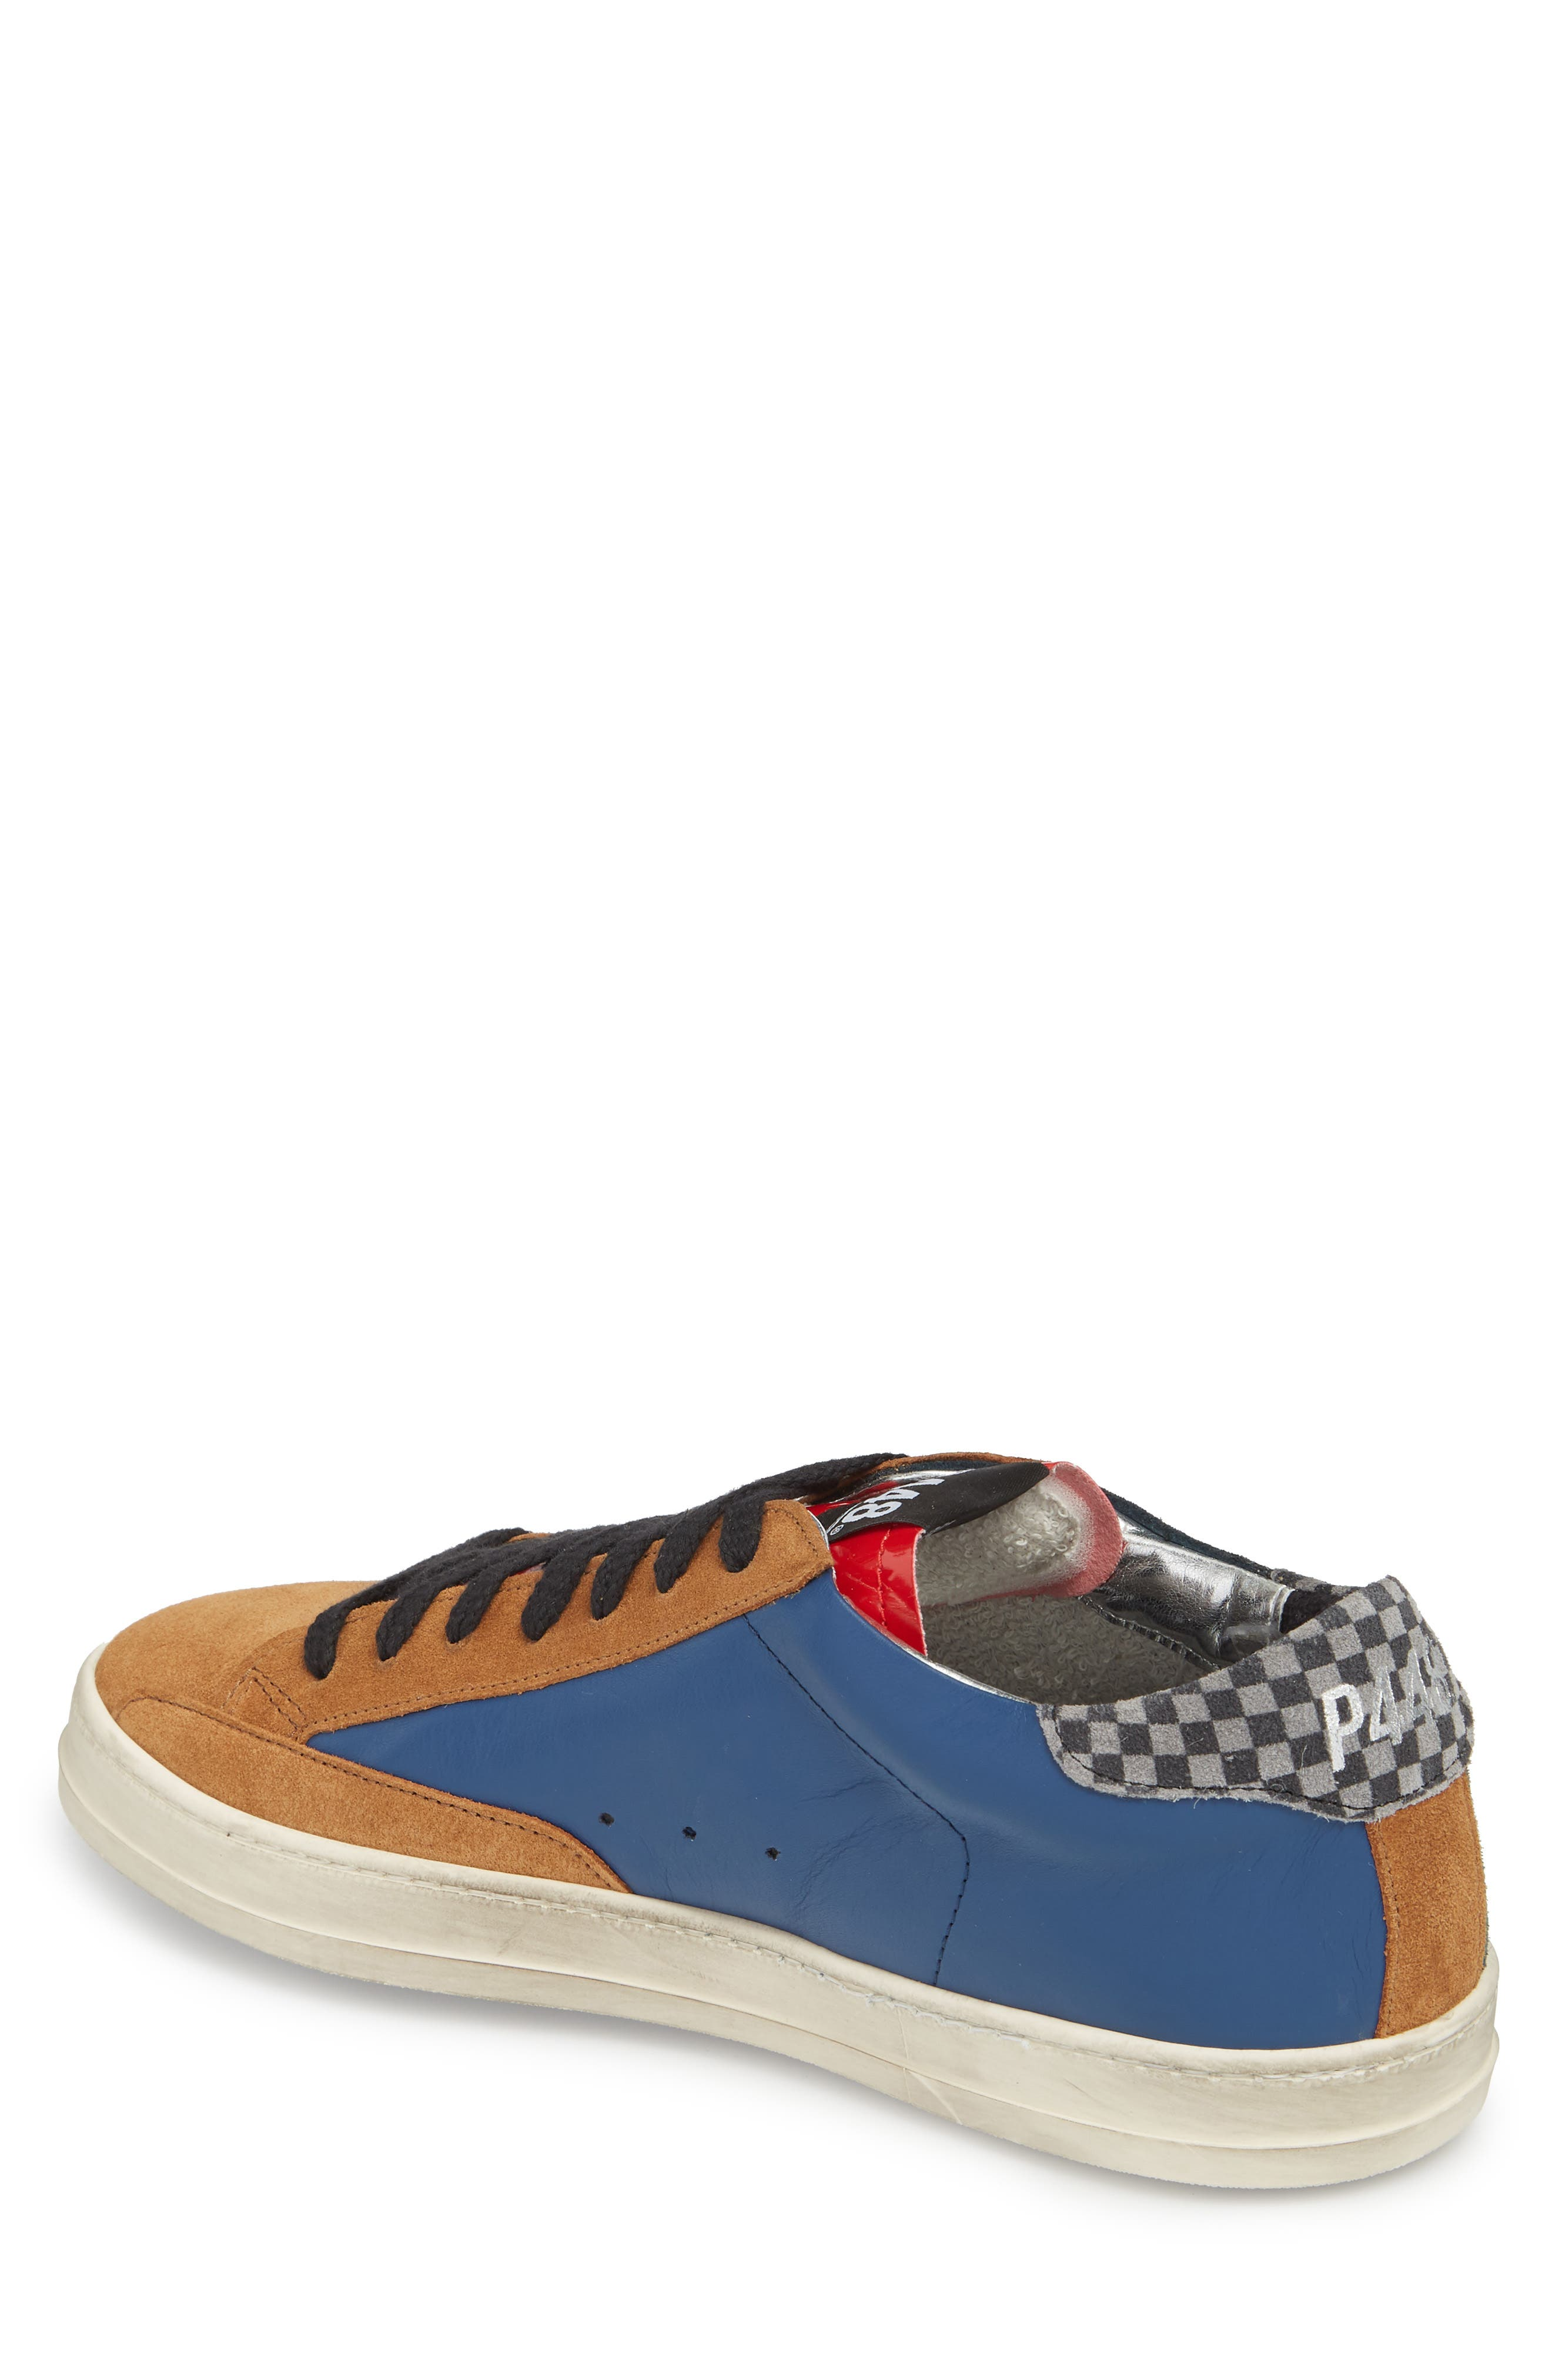 John Mix Low Top Sneaker,                             Alternate thumbnail 2, color,                             FOREST BLUE